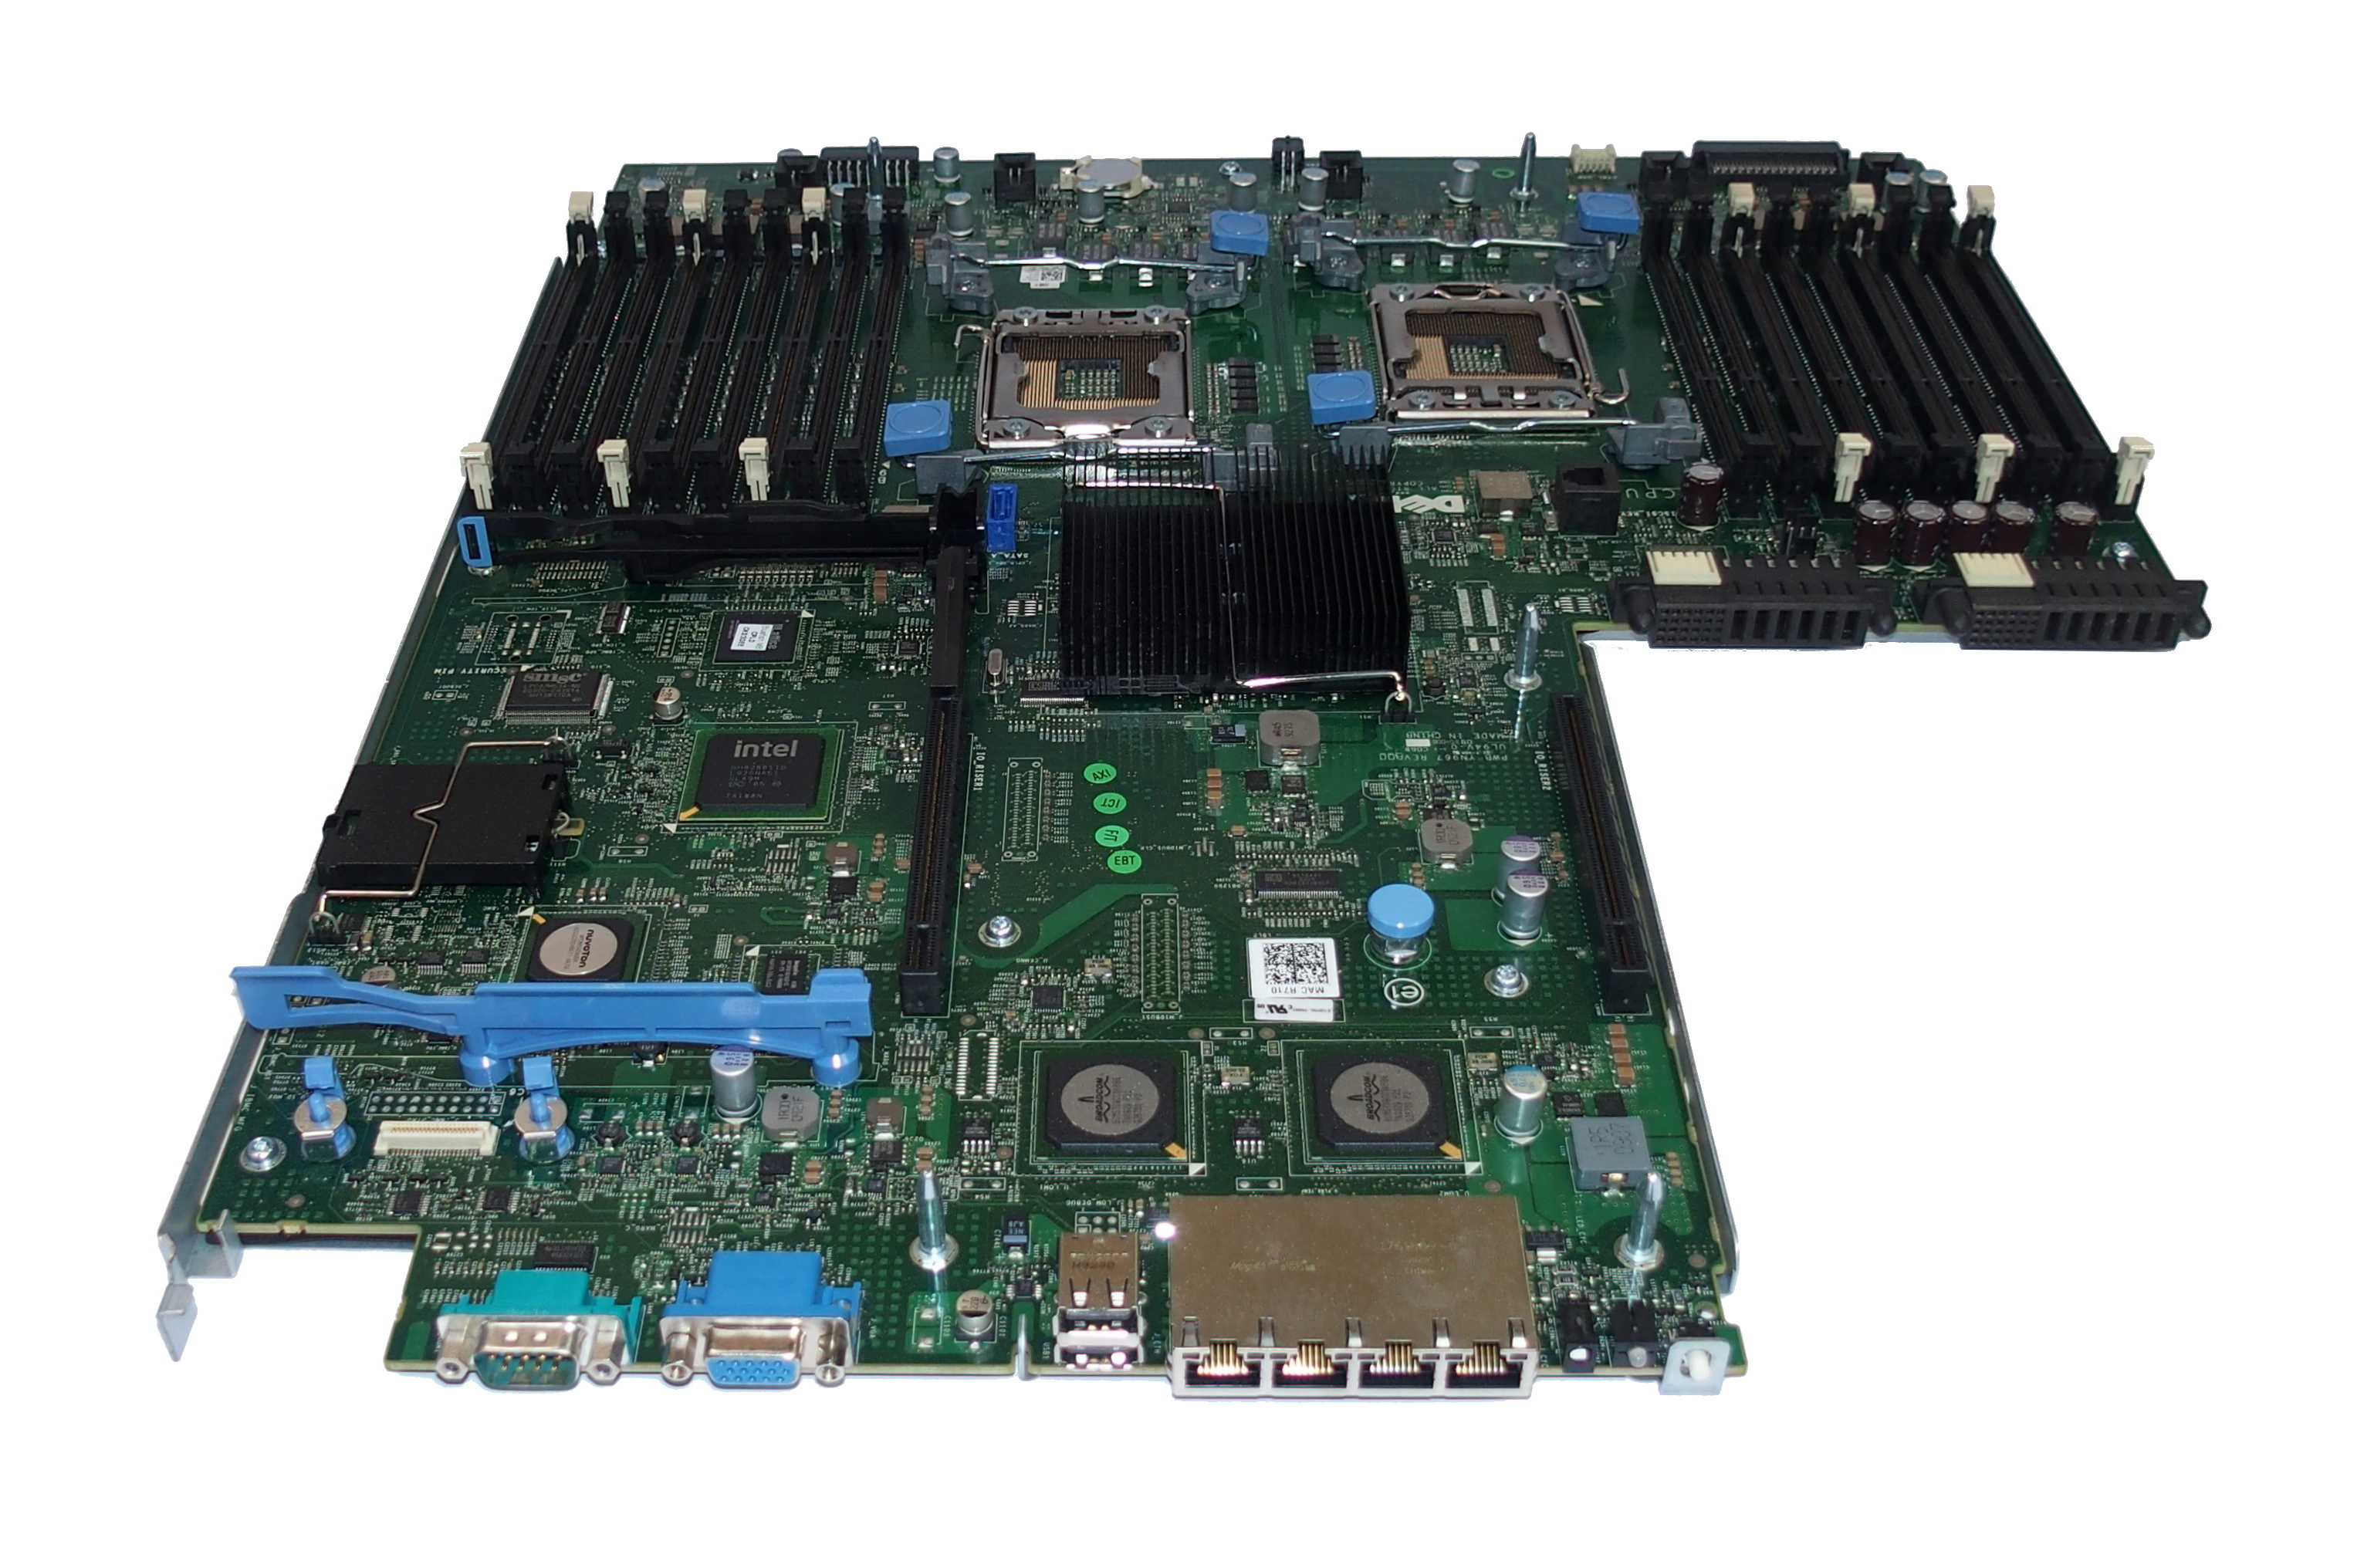 Dell PV9DG Dual Socket FCLGA 1366 Motherboard For PowerEdge R710 Server